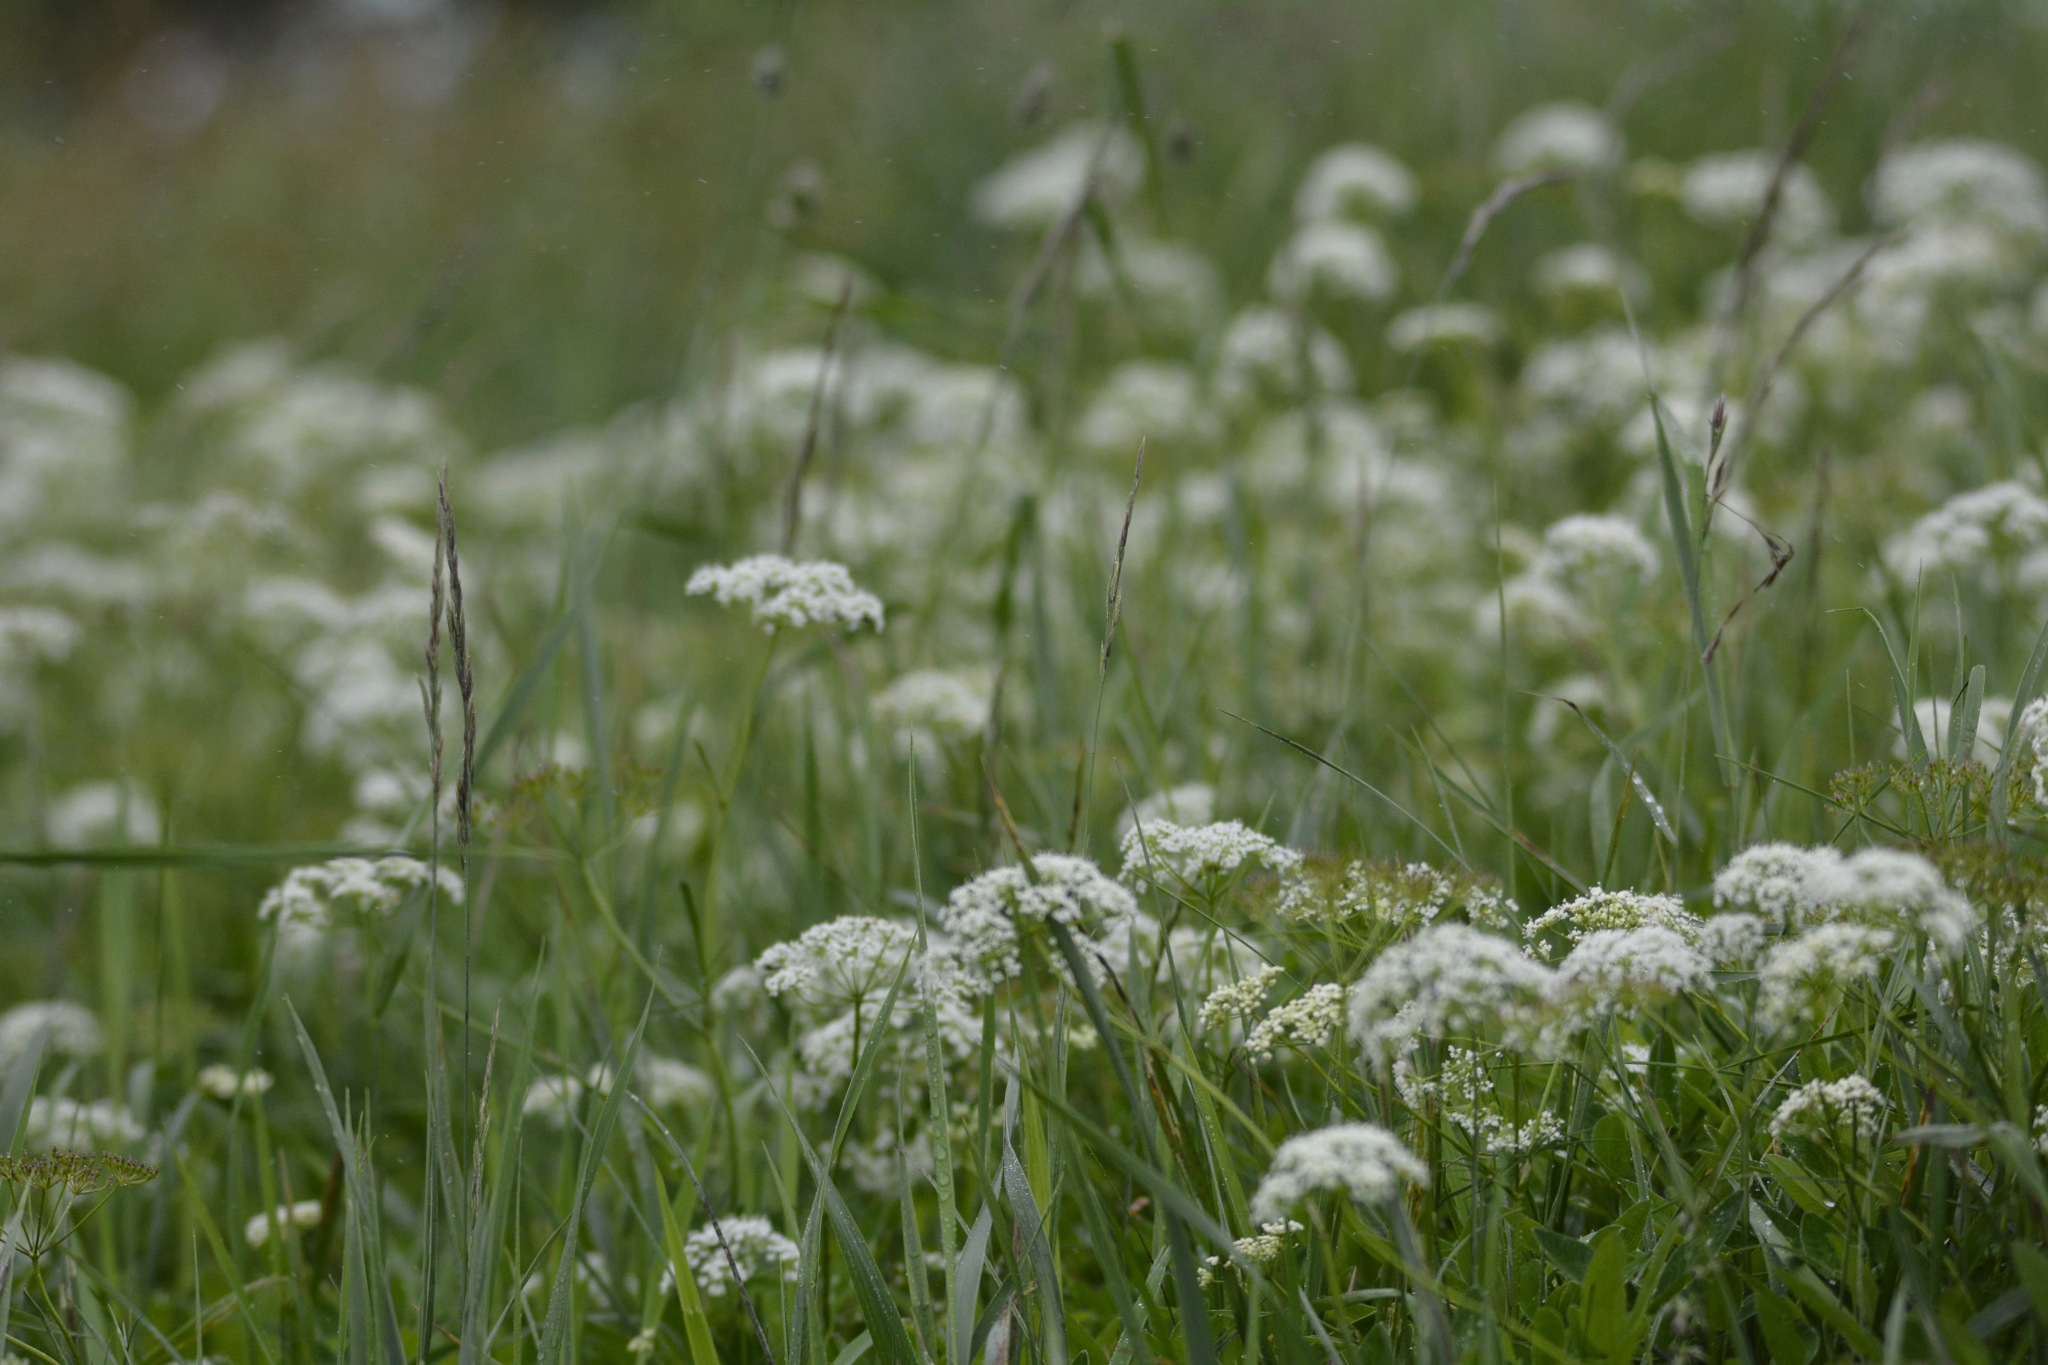 A Meadowful of Cow Parsley by Lars-Toralf Utnes Storstrand